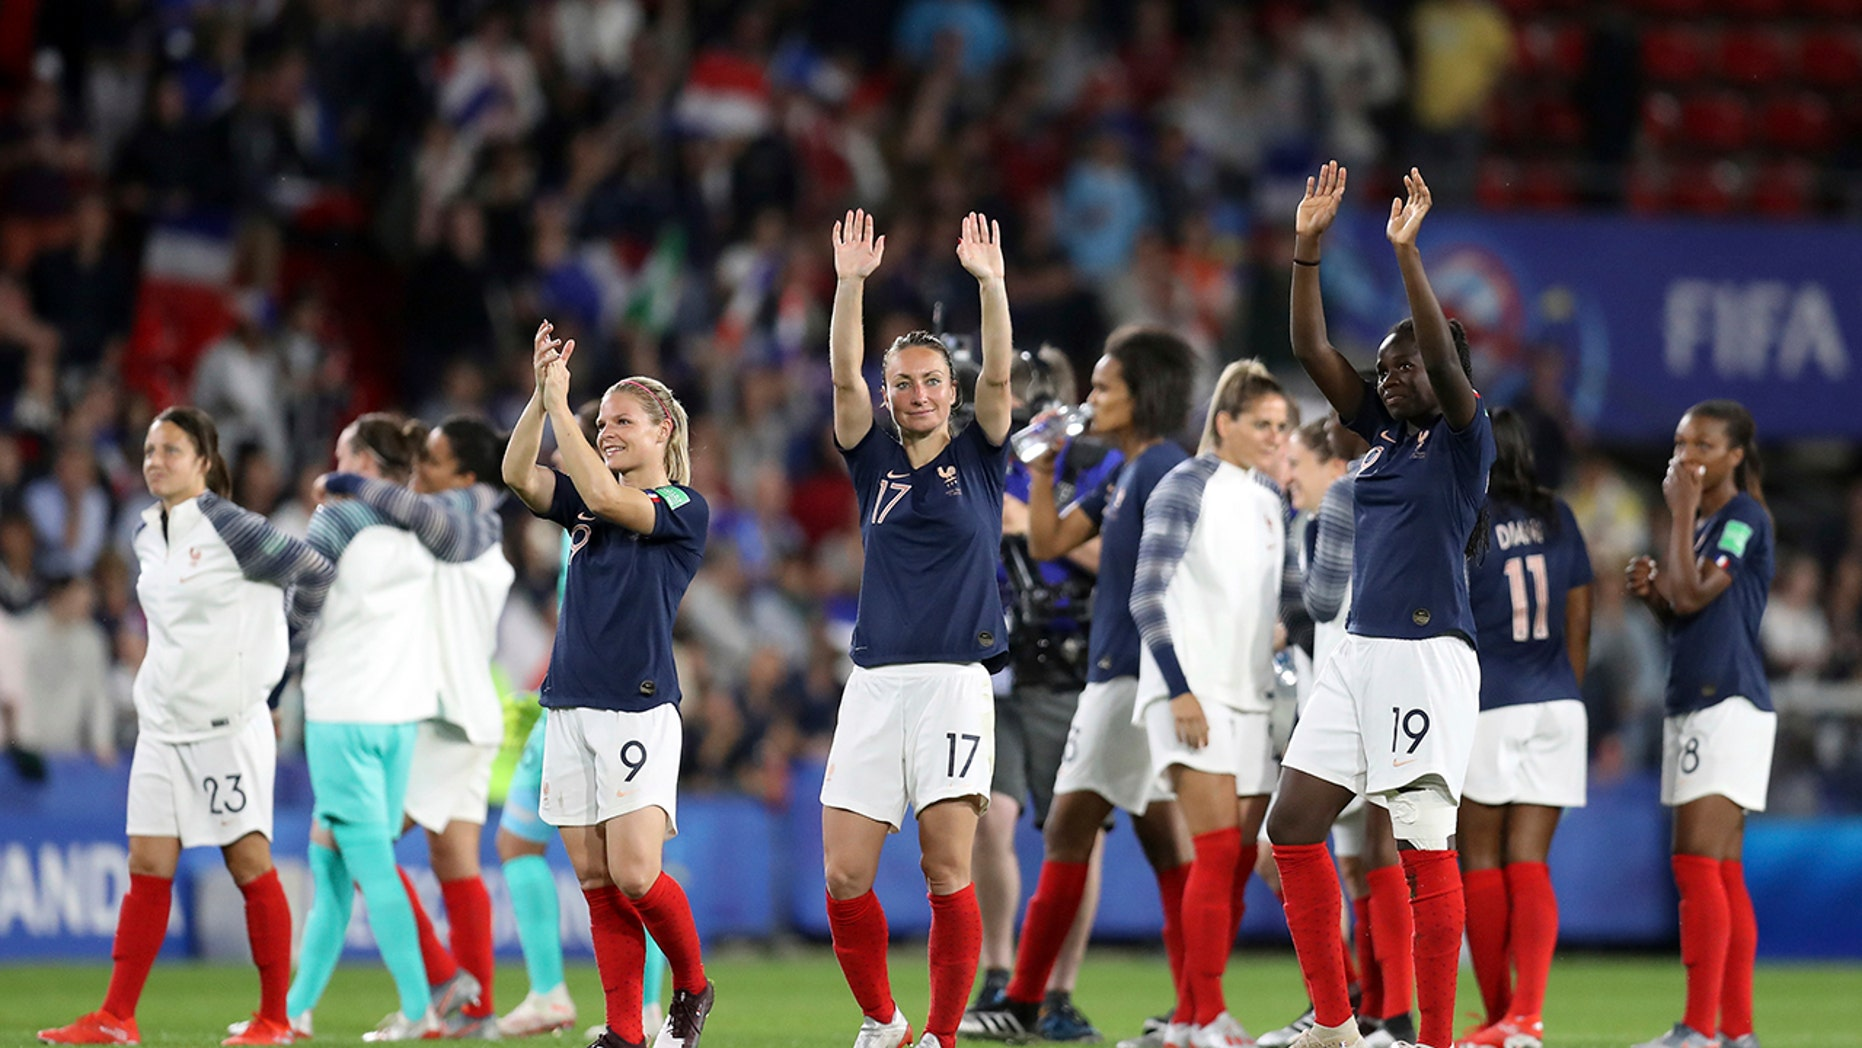 France players celebrate at the end of the Women's World Cup Group A soccer match between Nigeria and France at the Roazhon Park in Rennes, France, Monday, June 17, 2019. France beat Nigeria 1-0. (AP Photo/Vincent Michel)